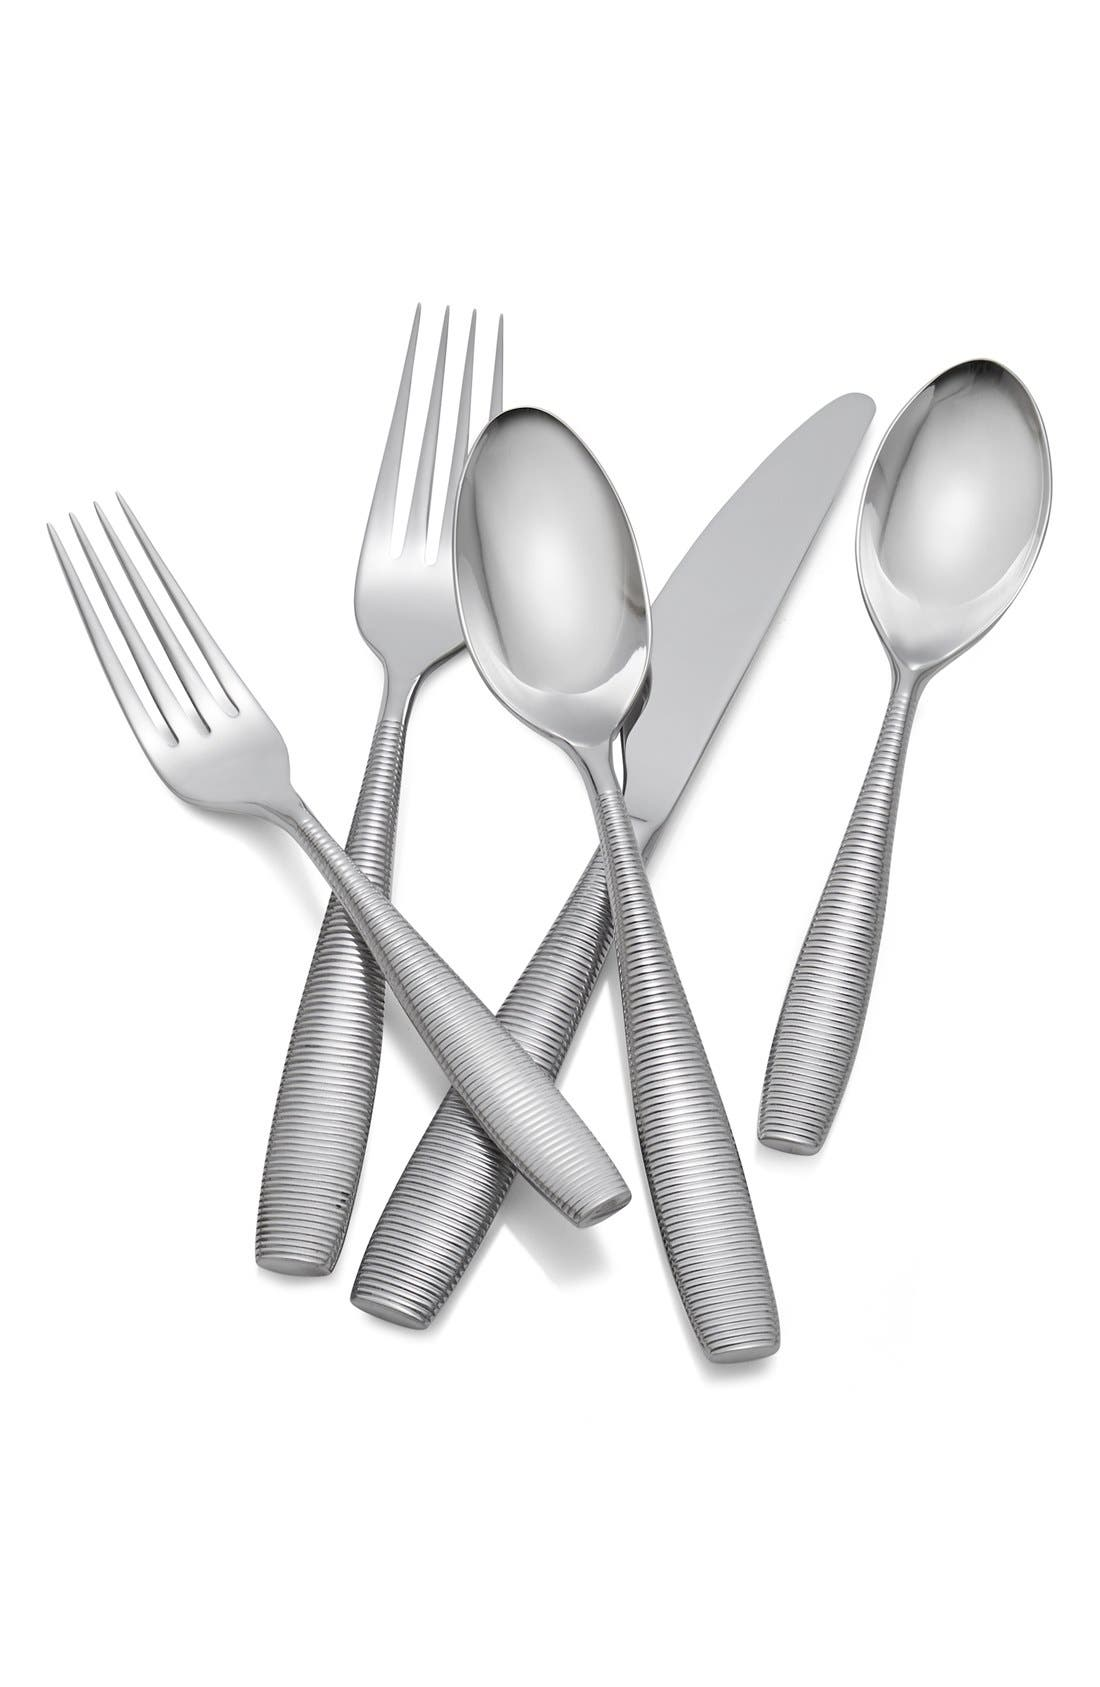 'Fiona' 5-Piece Stainless Steel Place Setting,                             Main thumbnail 1, color,                             Silver